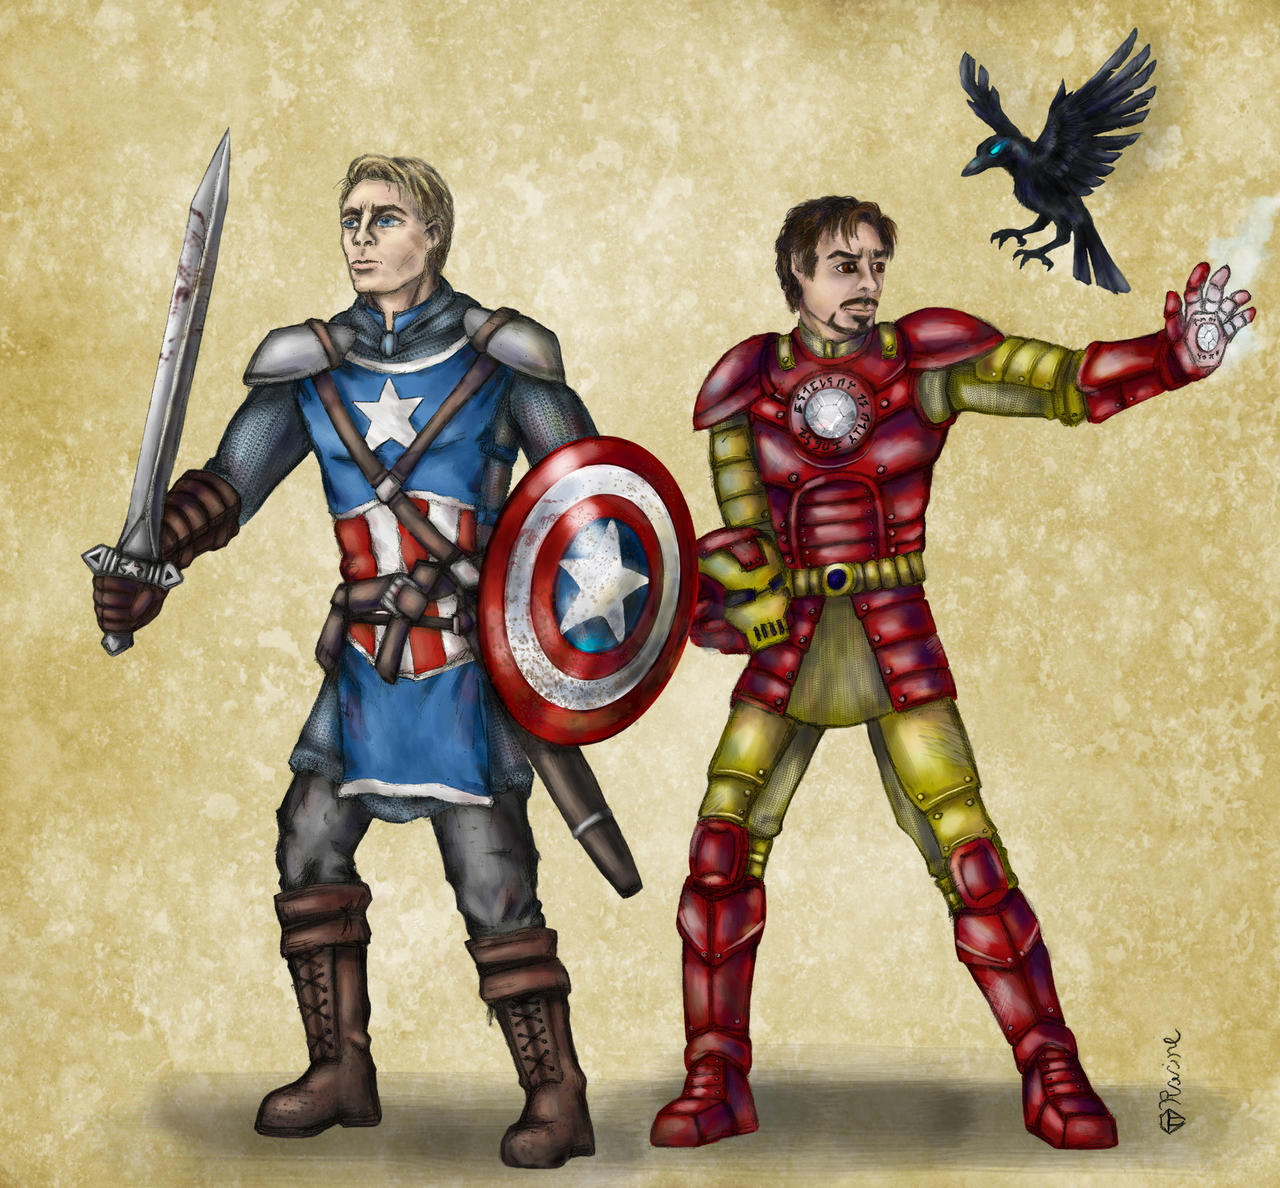 Képek - Page 6 Dnd_avengers___cap_and_iron_man_by_mcat711-d626pja